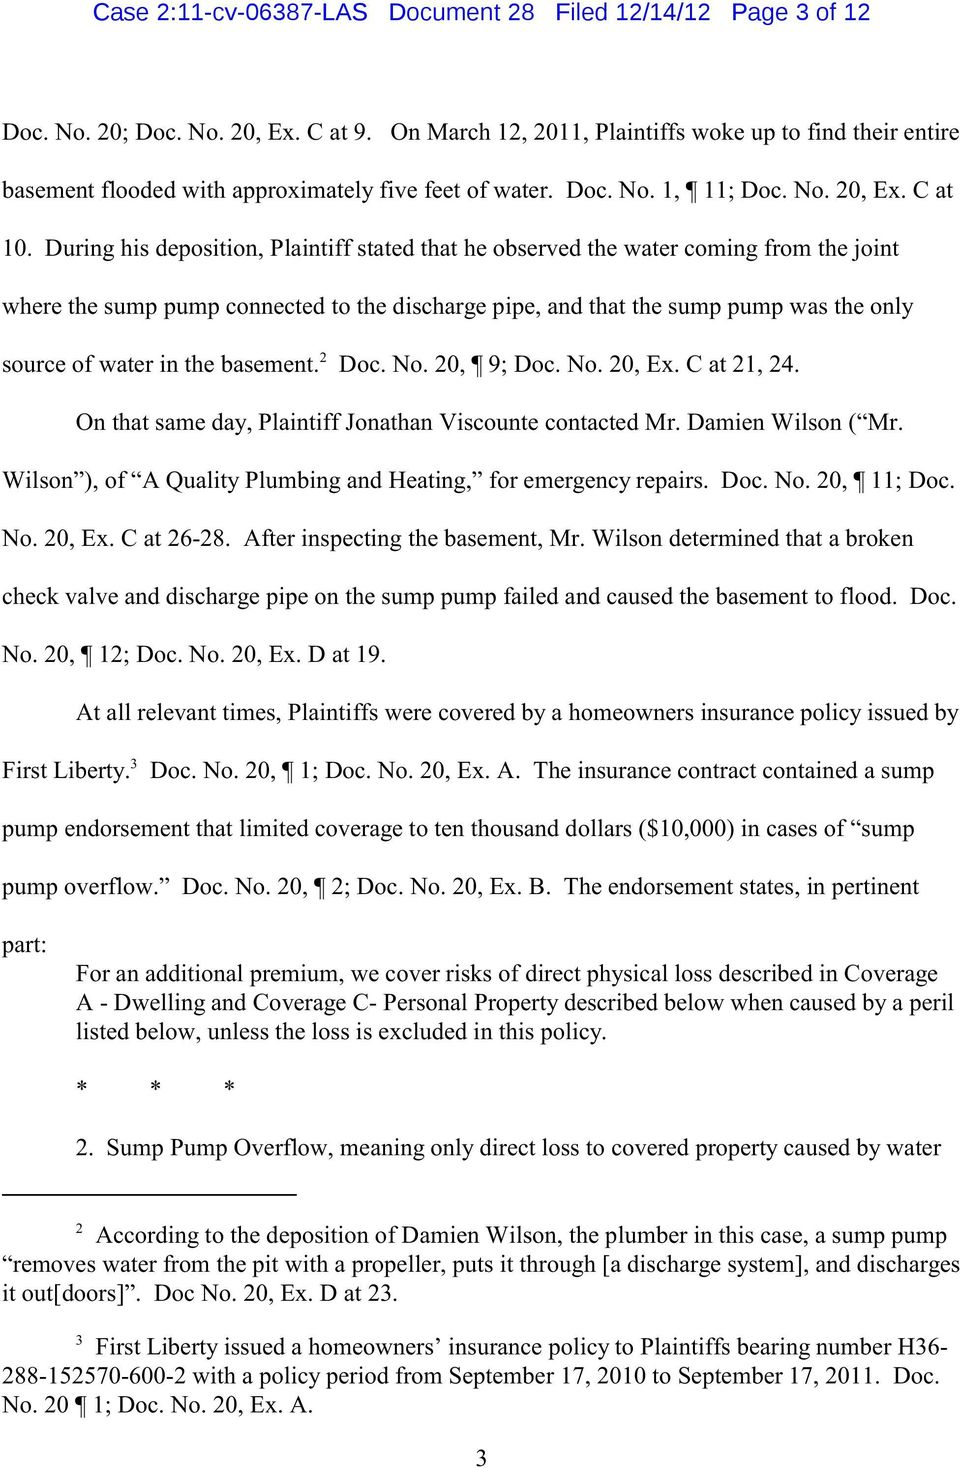 During his deposition, Plaintiff stated that he observed the water coming from the joint where the sump pump connected to the discharge pipe, and that the sump pump was the only 2 source of water in